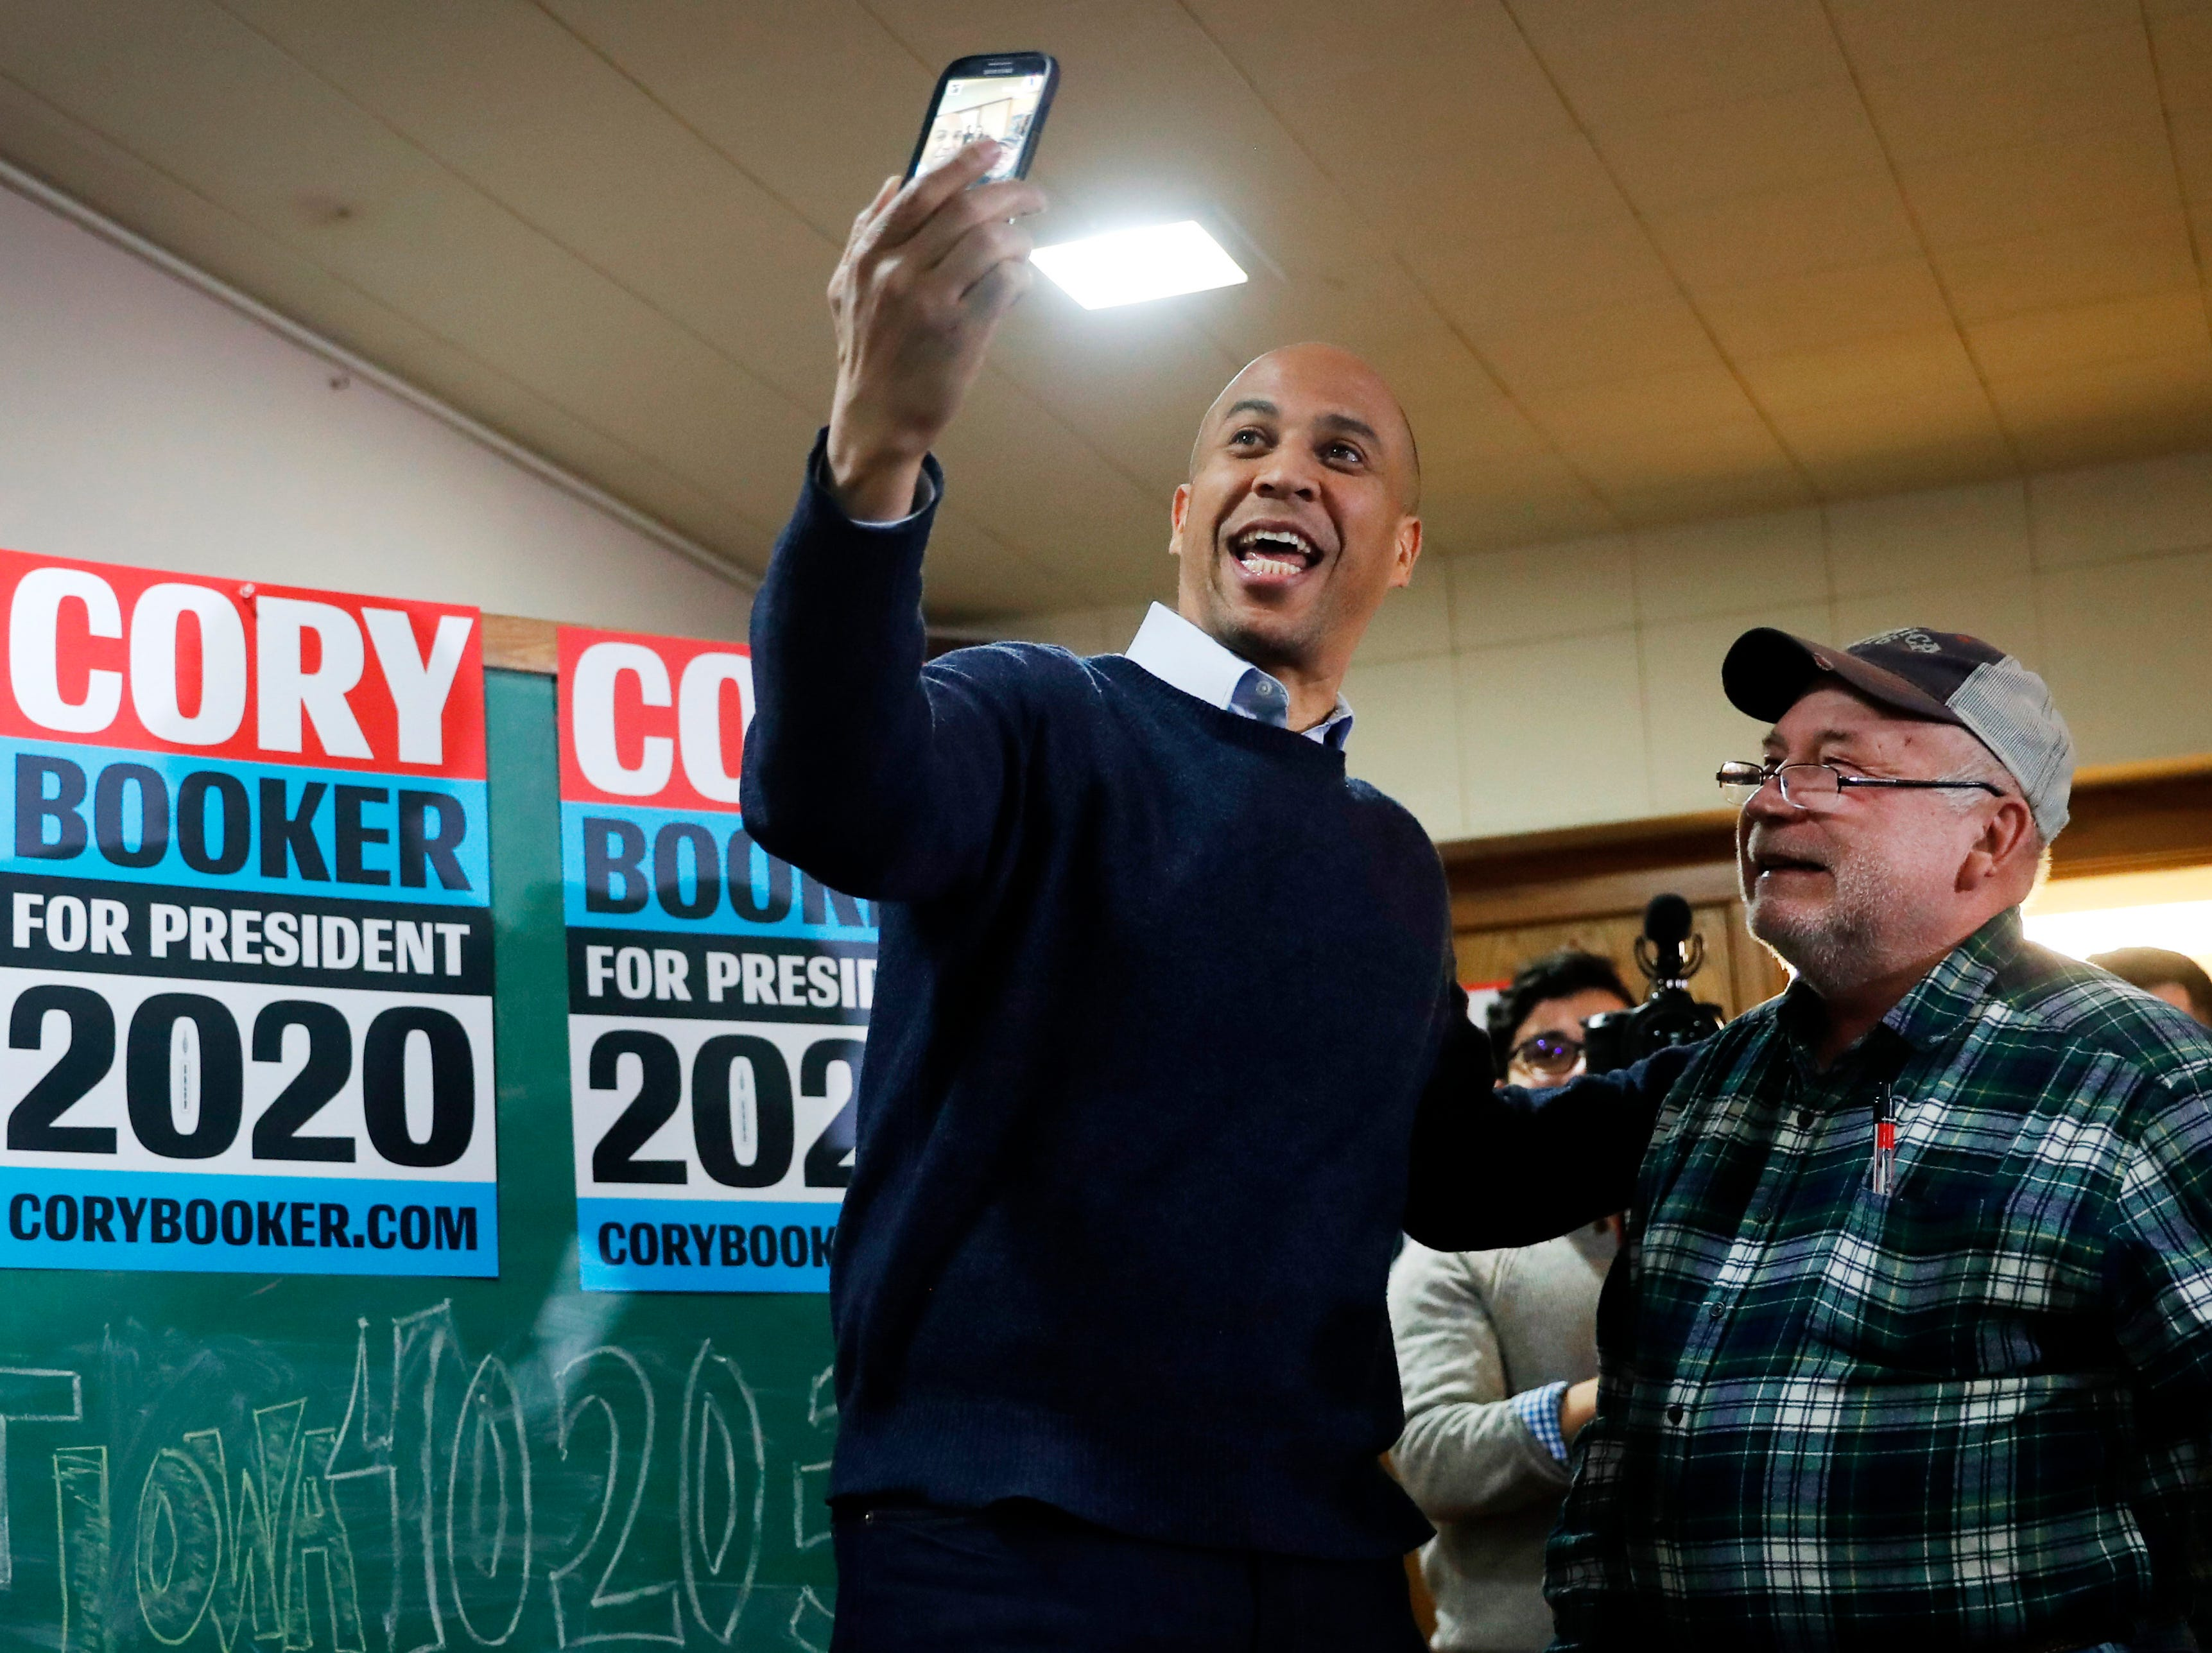 U.S. Sen. Cory Booker, D-N.J., poses for a photo with Chris Peterson, of Clear Lake, Iowa, right, during a meet and greet with local residents at the First Congregational United Church of Christ, Friday, Feb. 8, 2019, in Mason City, Iowa. (AP Photo/Charlie Neibergall)